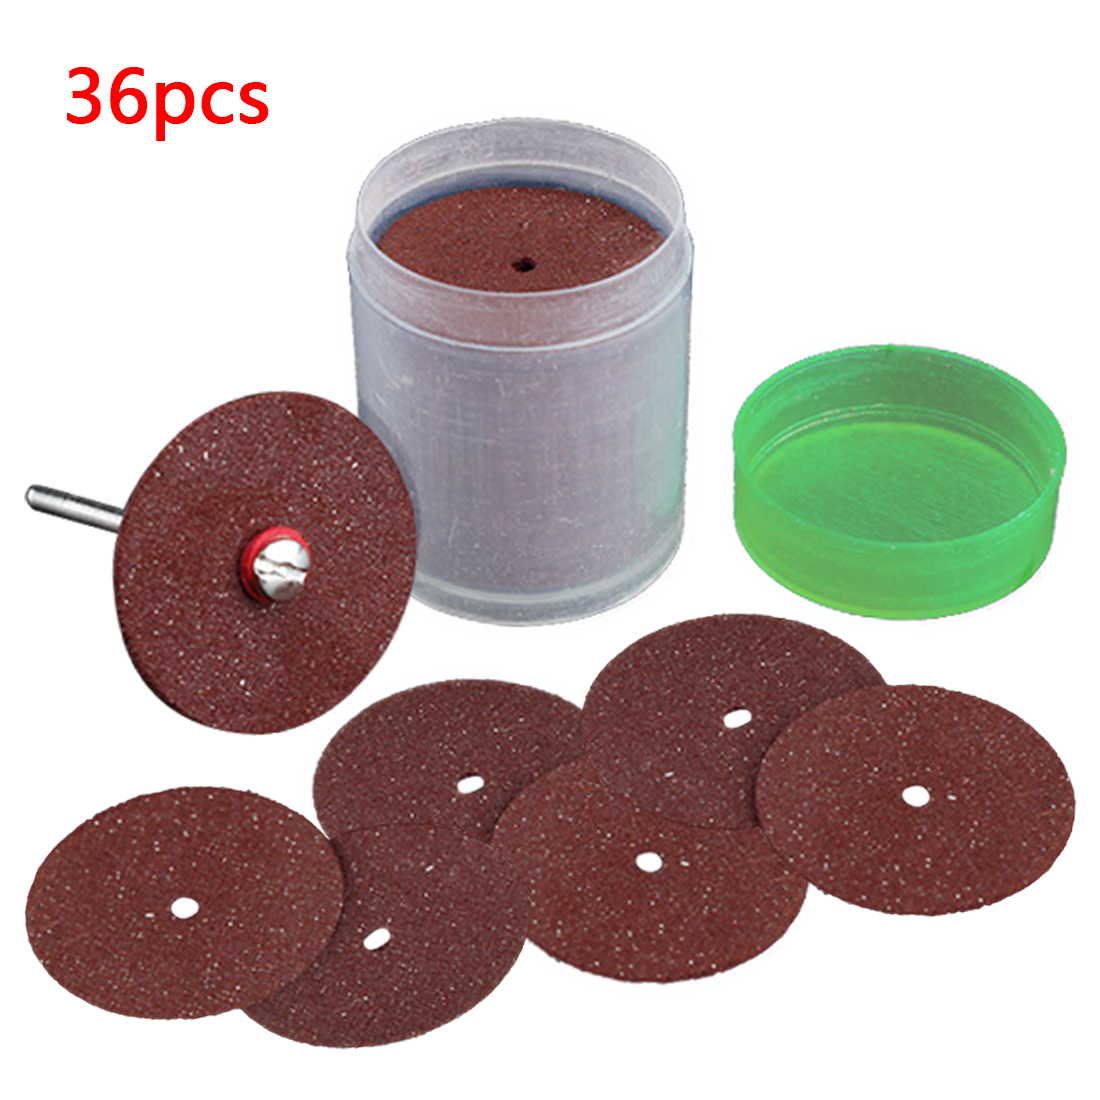 36Pcs Cutting Disc Circular Saw Blade Grinding Wheel For Dremel Rotary Tool Abrasive Sanding Disc Tools Cutting Wood Metal